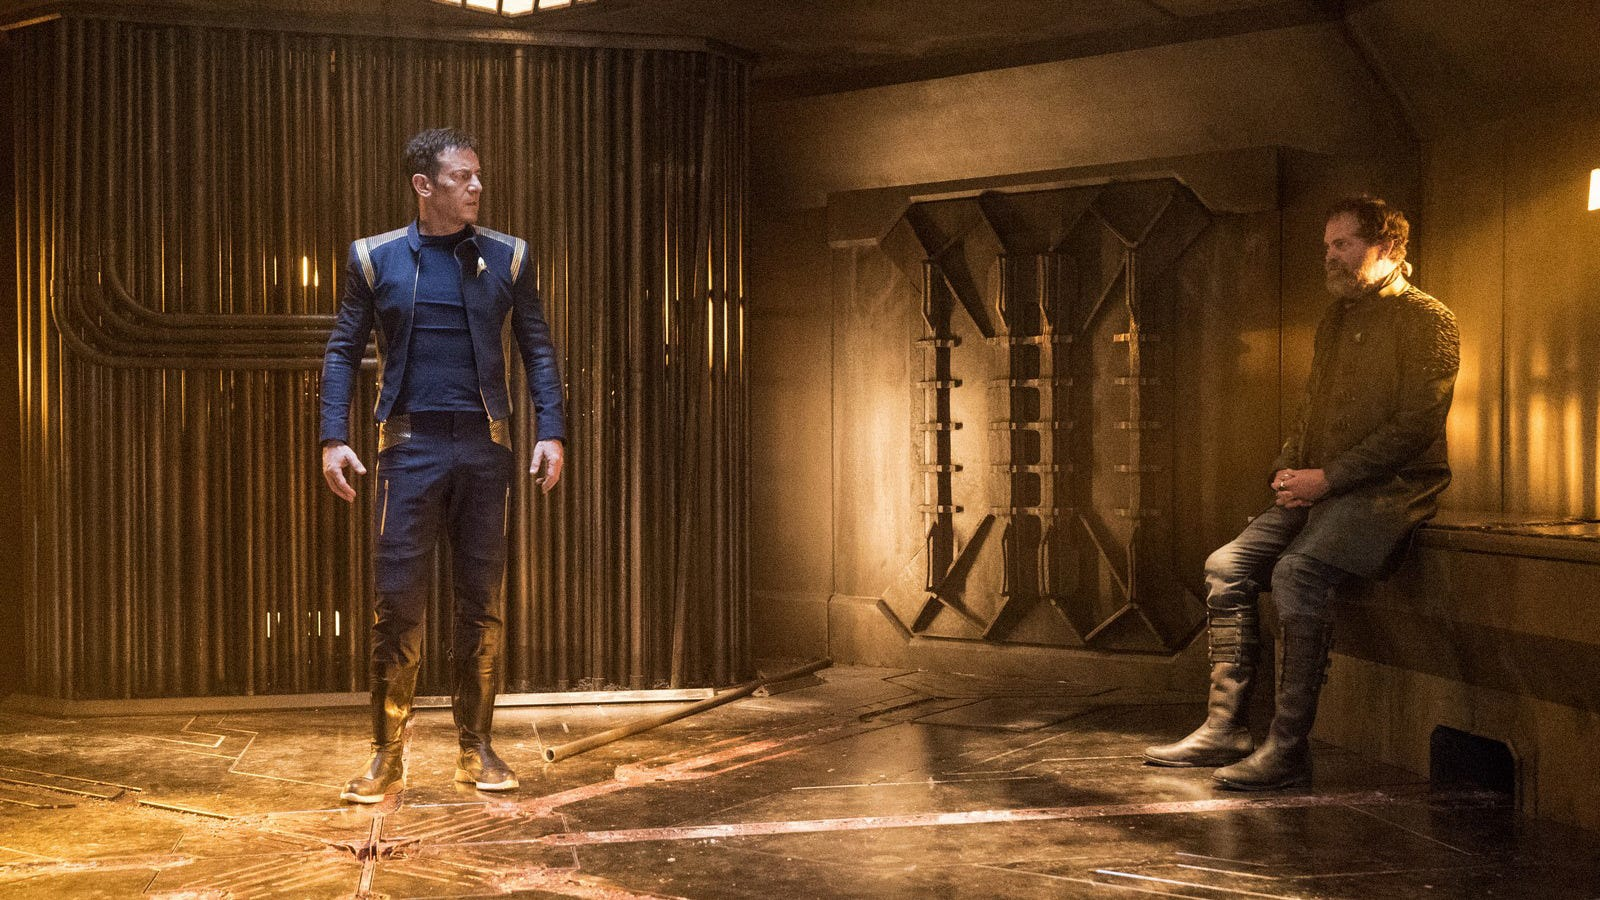 And Now Star Trek: Discovery Has Lost Its Soul